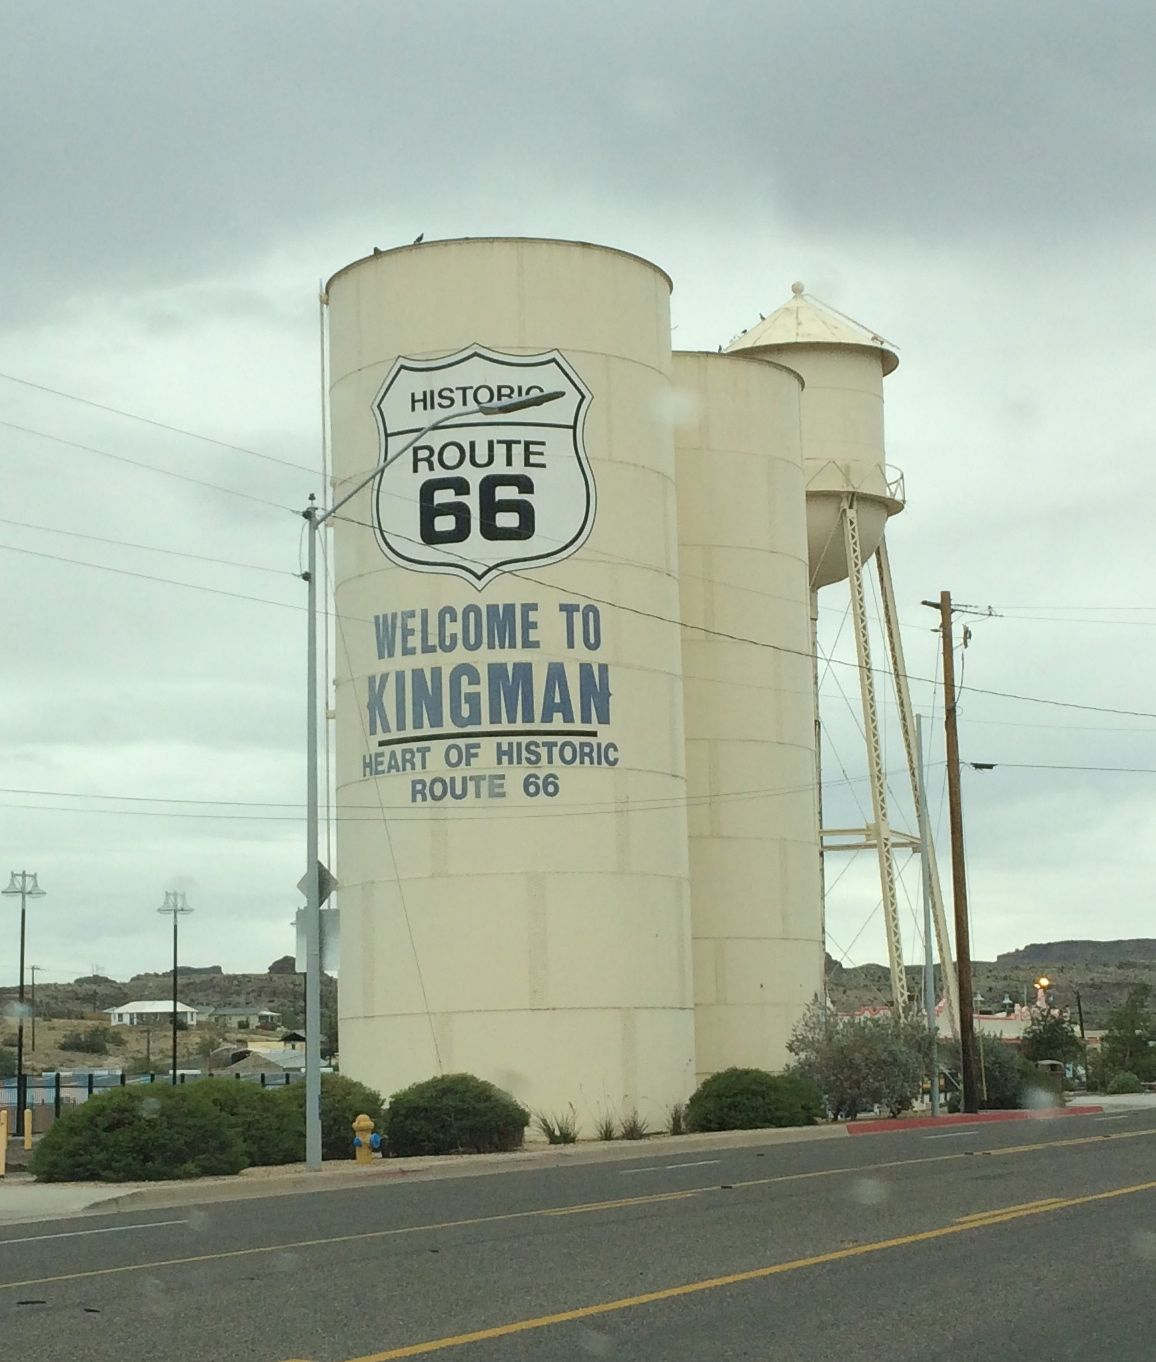 Along Route 66 in Kingman